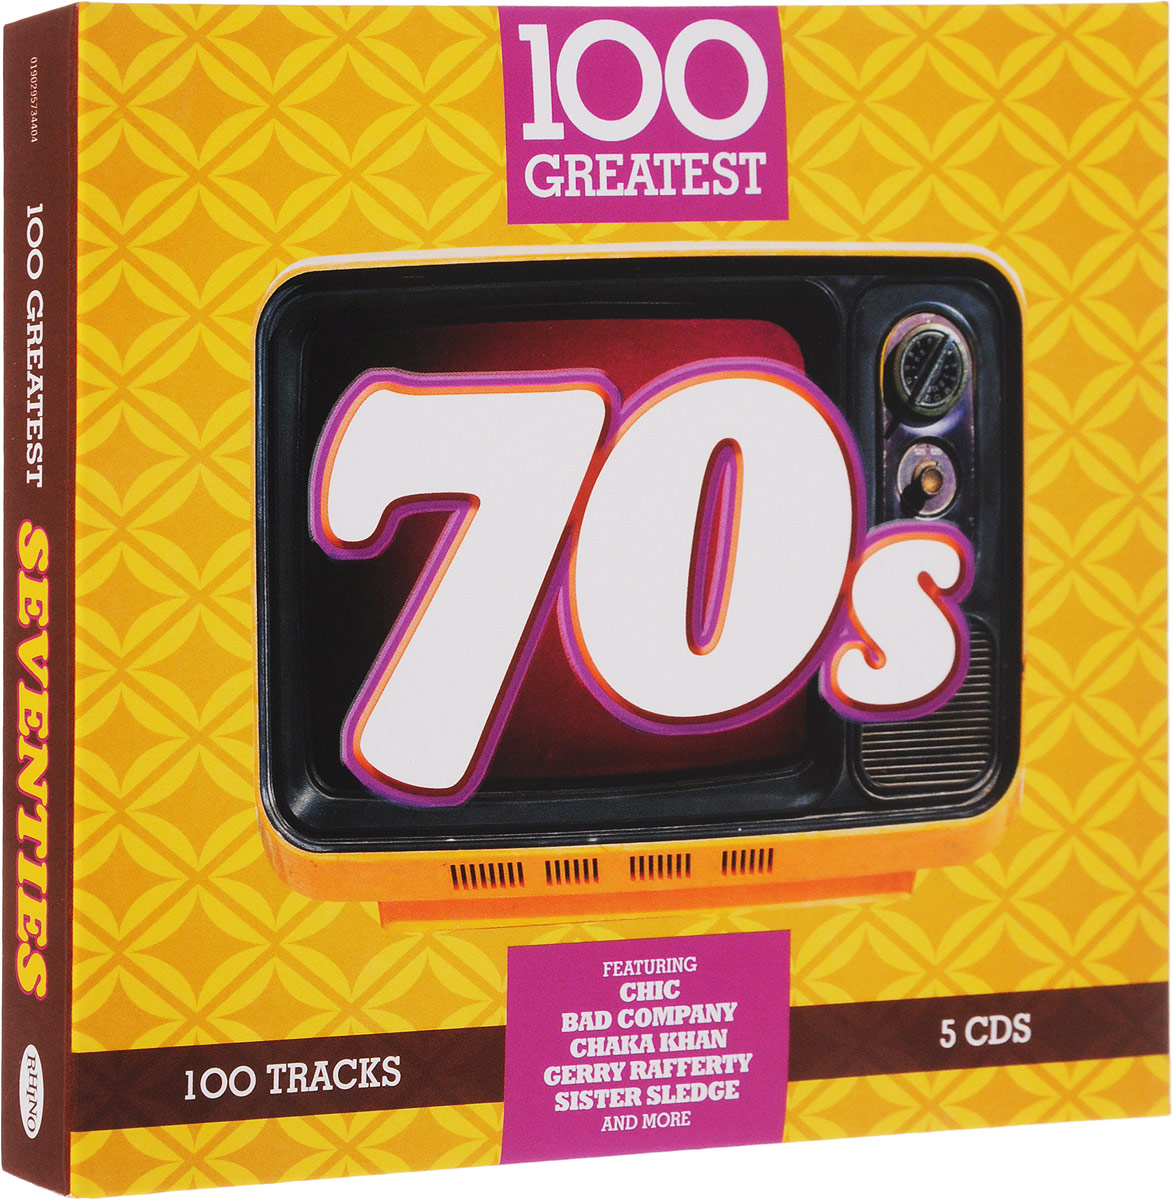 100 Greatest 70s (Special Price Limited Time) (5 CD)